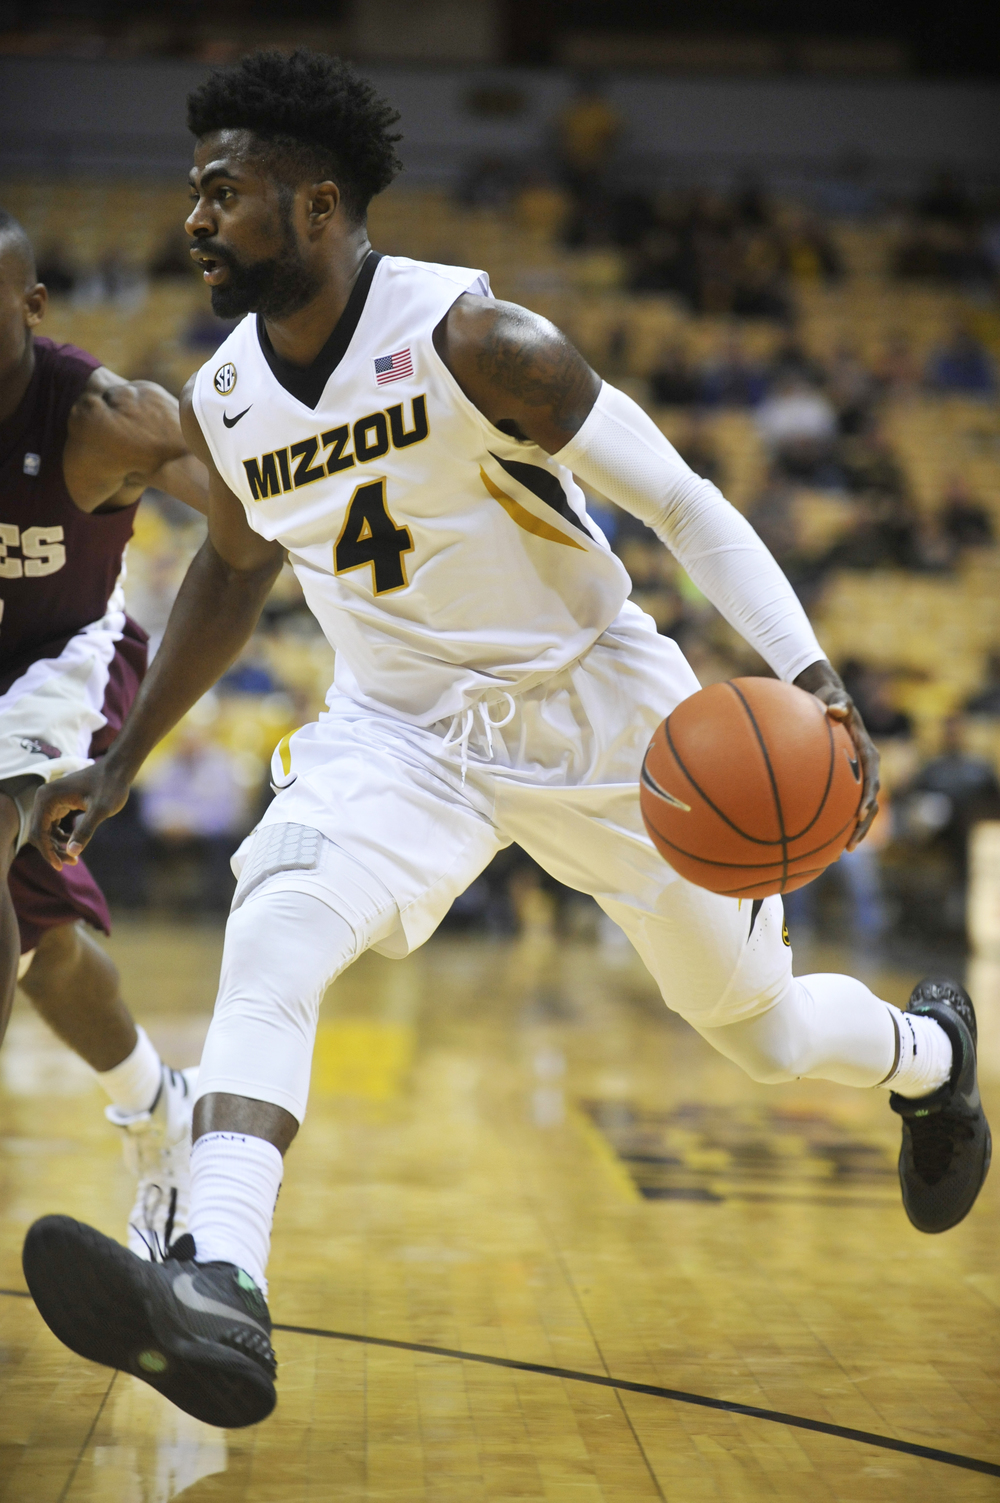 Missouri's Tramaine Isabell drives the ball towards the basket during the game against Maryland-Eastern Shore on Sunday, November 15, 2015 at Mizzou Arena. Missouri won 73-55.